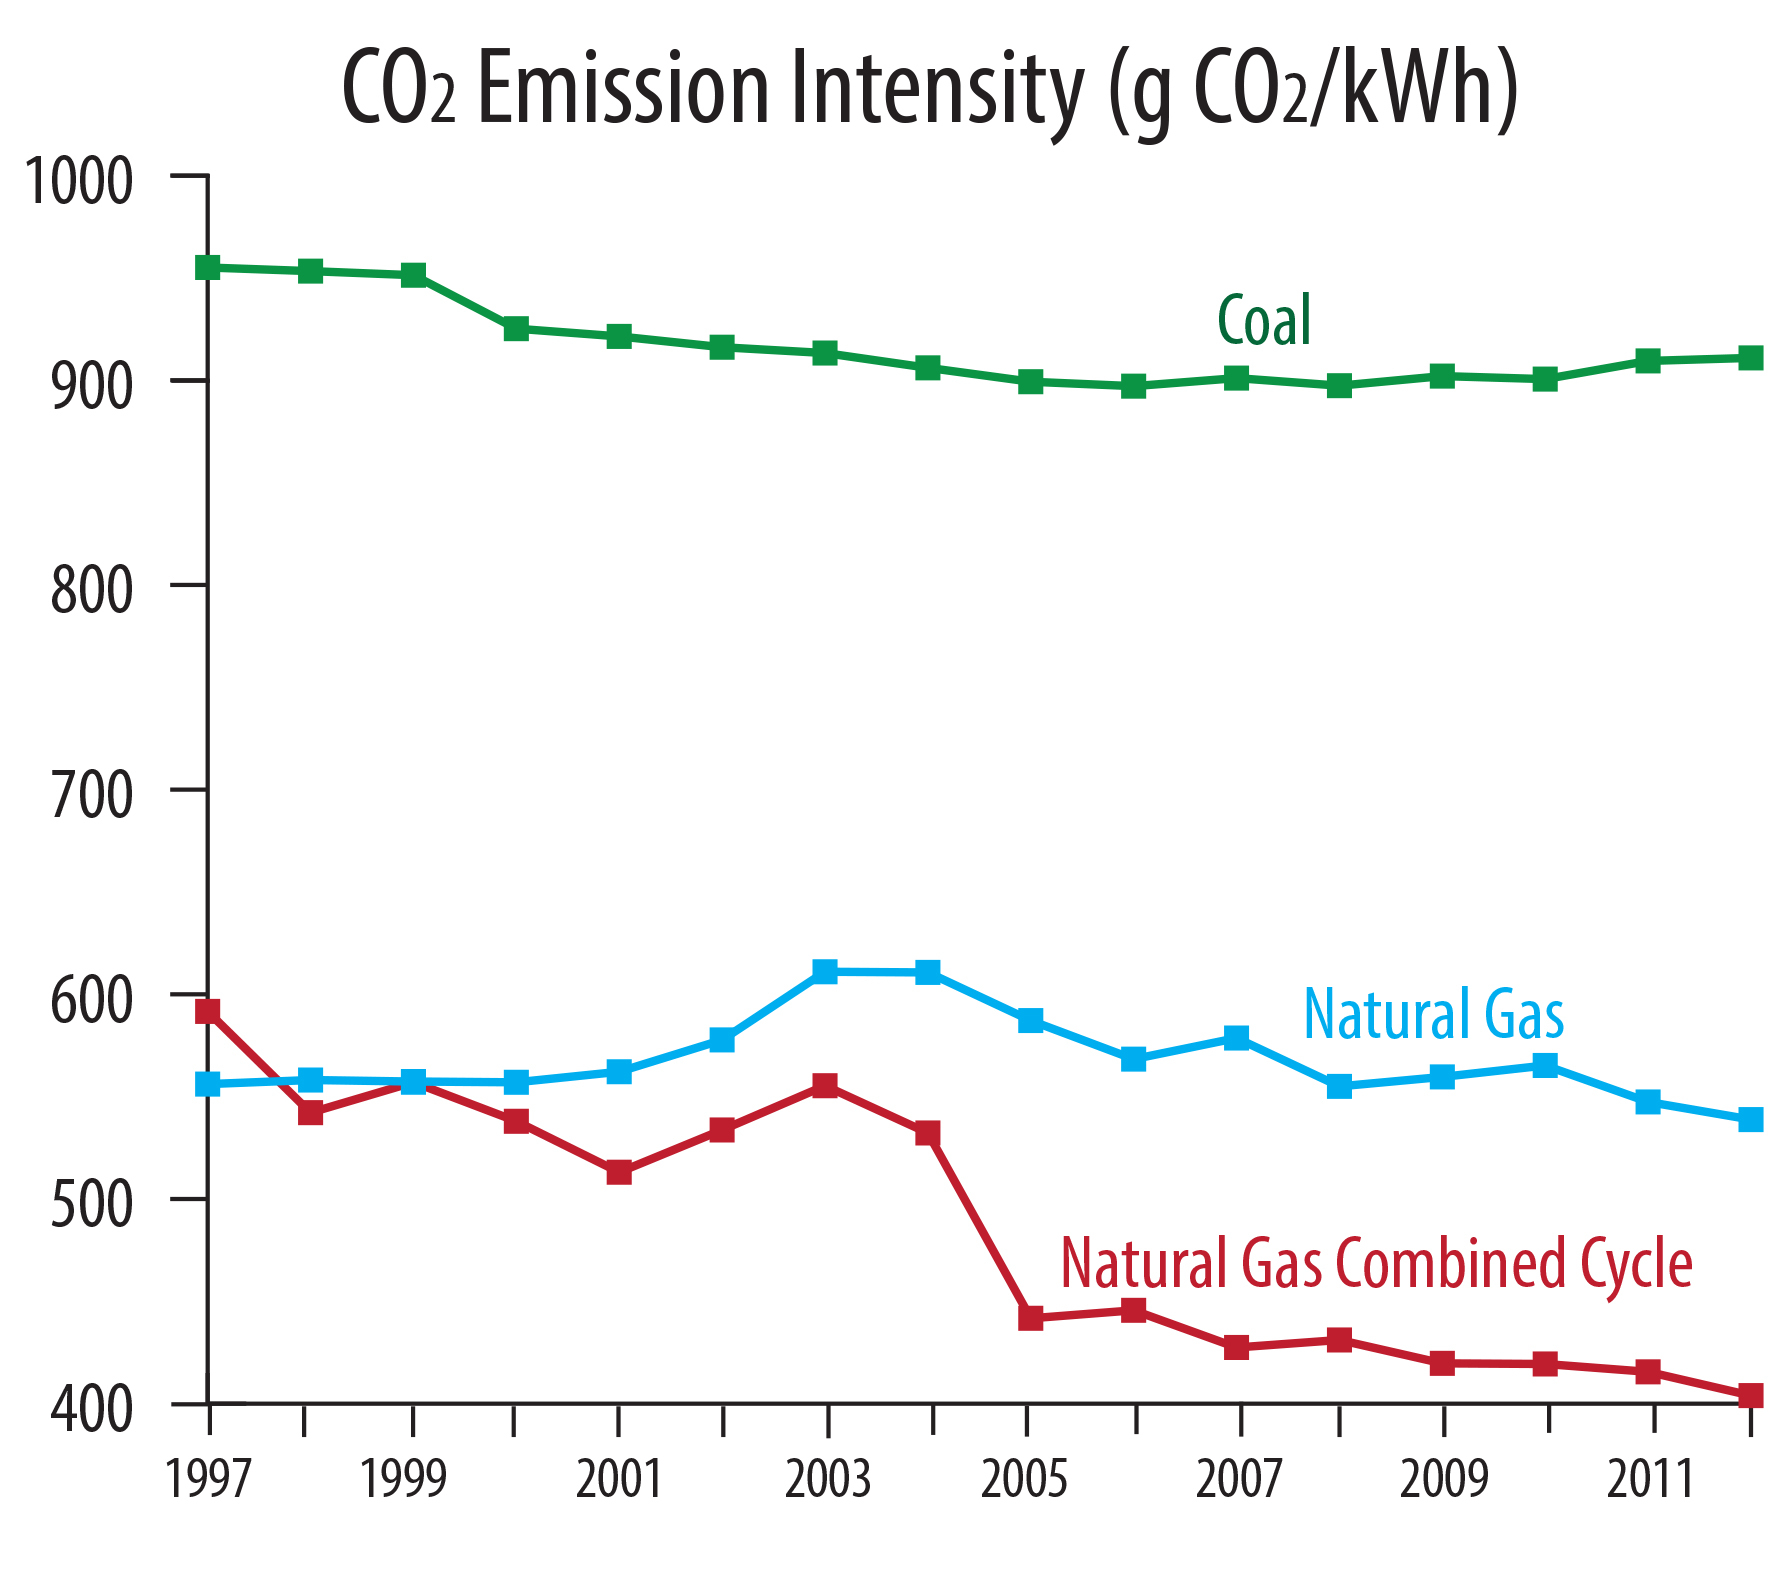 Natural Gas Combined Cycle Emissions